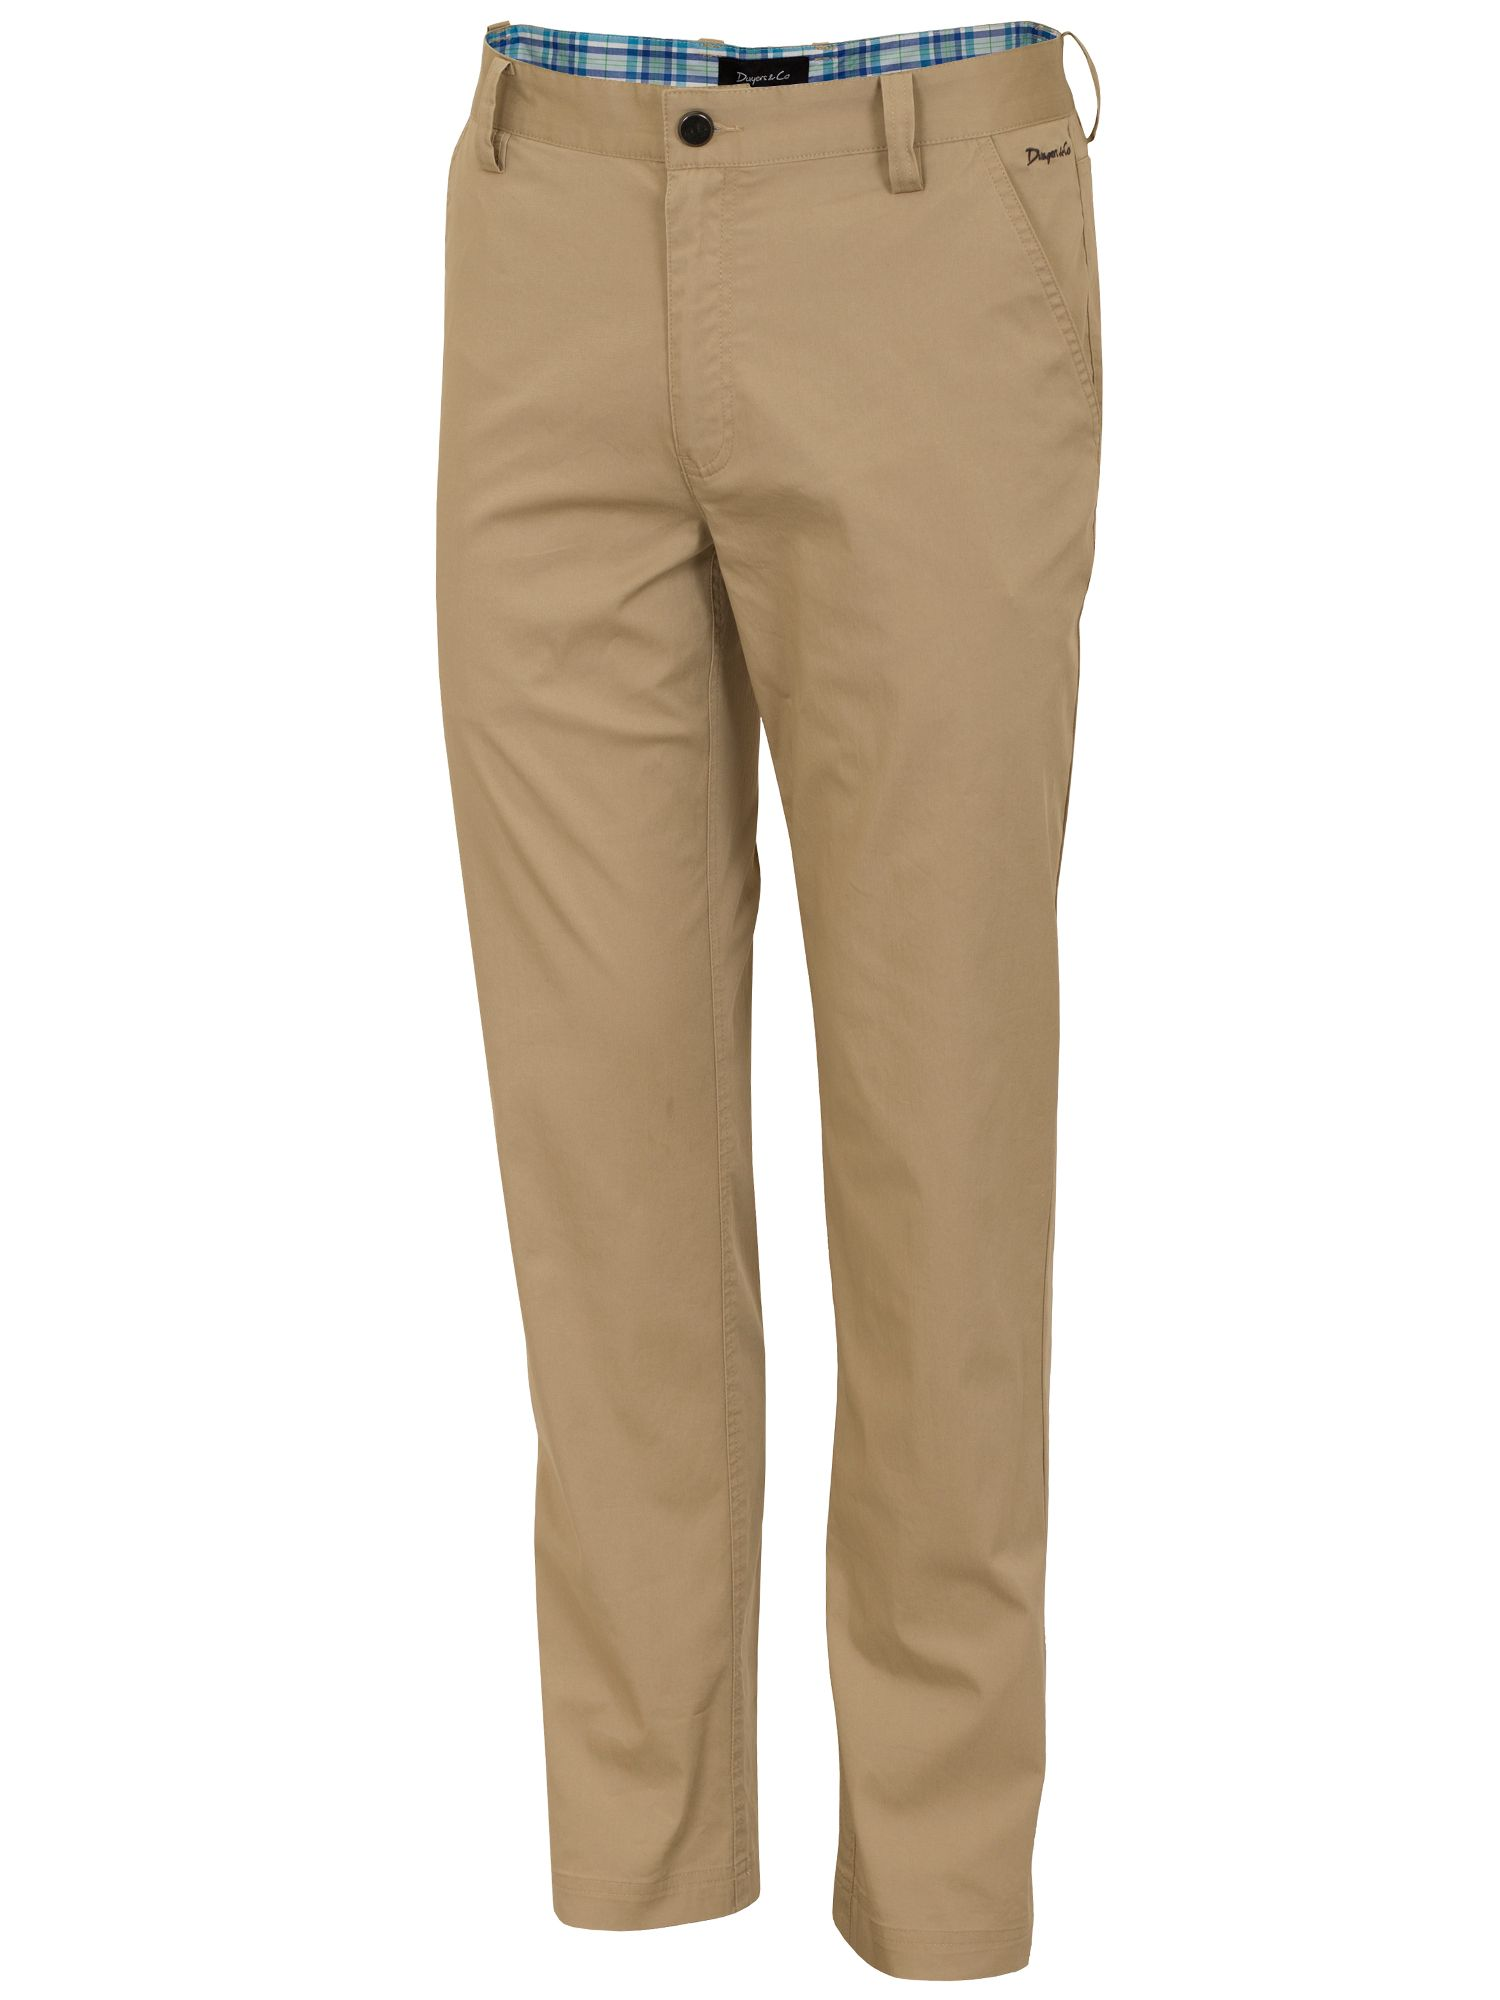 Dwyers and Co Men's Dwyers and Co Titanium chino trouser, Beige